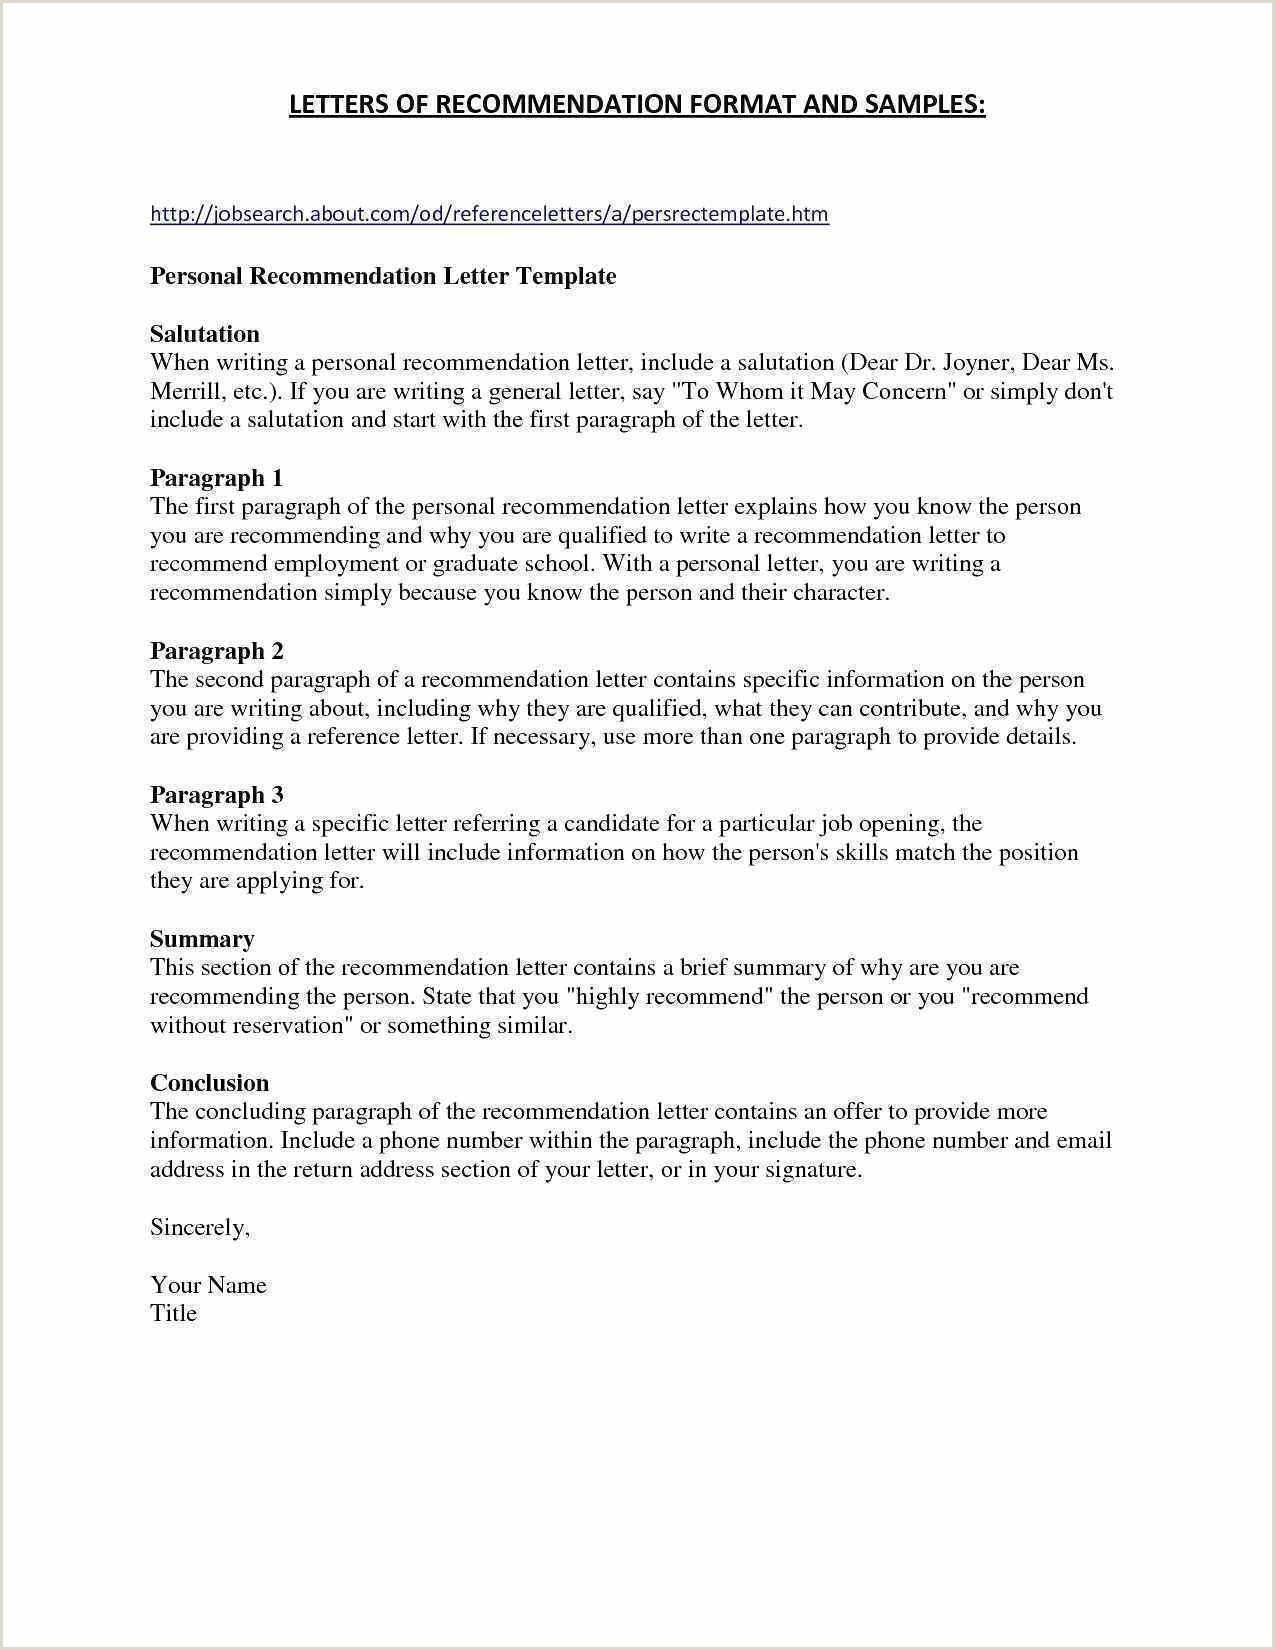 Industrial Engineering Cover Letter Sample Lettermichael